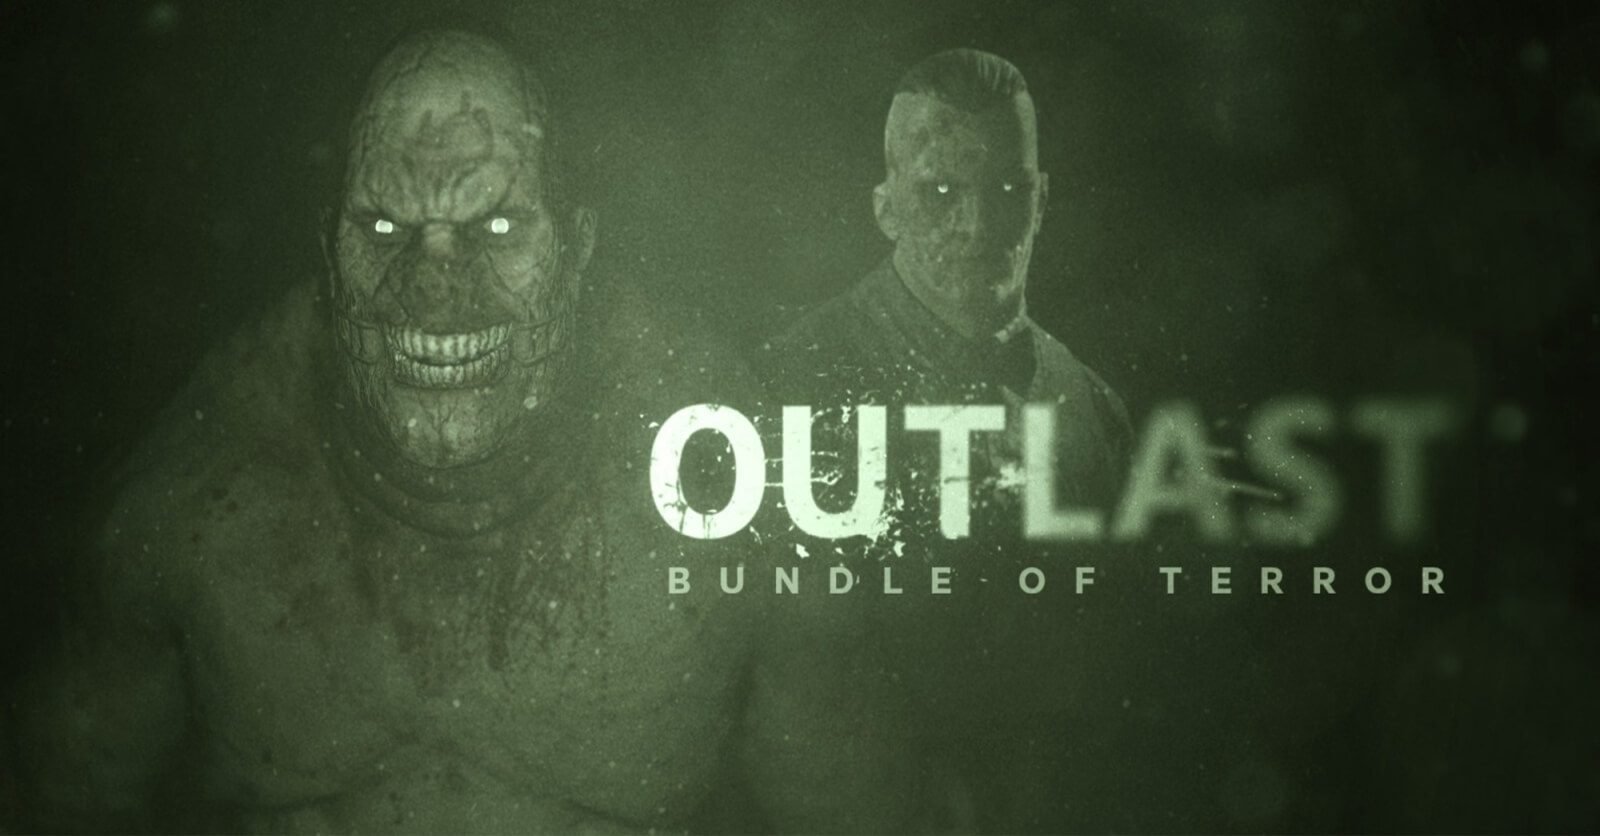 outlast switch featured image 1 - Outlast Released on Nintendo Switch